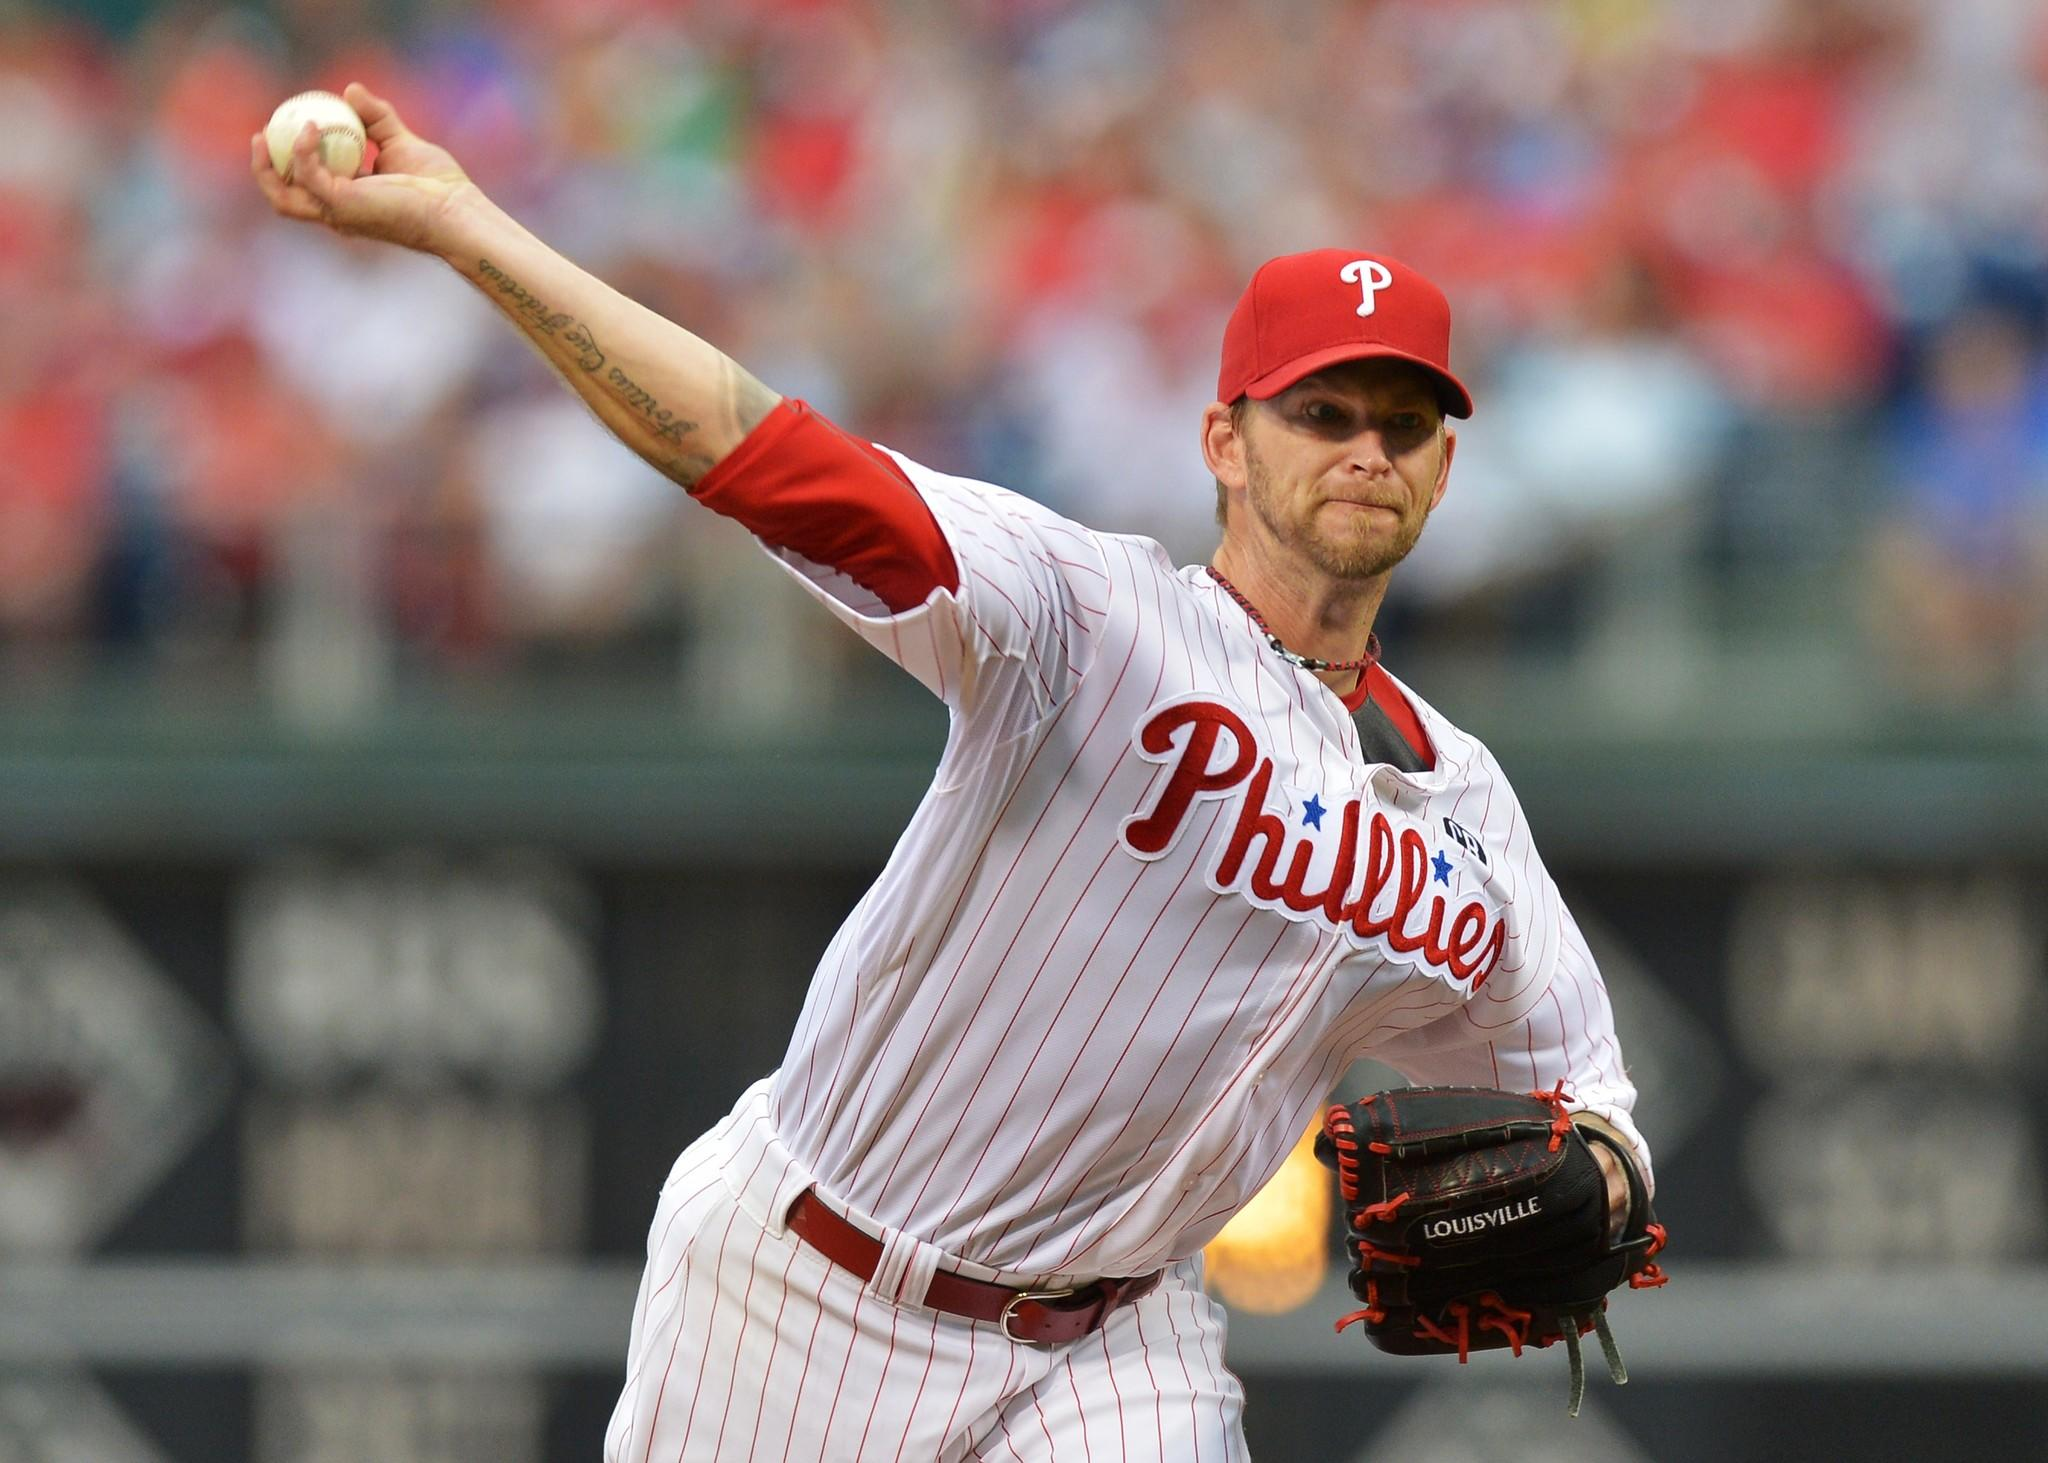 Philadelphia's A.J. Burnett lives in Monkton, but he re-signed with the Phillies earlier this year despite interest form the Orioles.